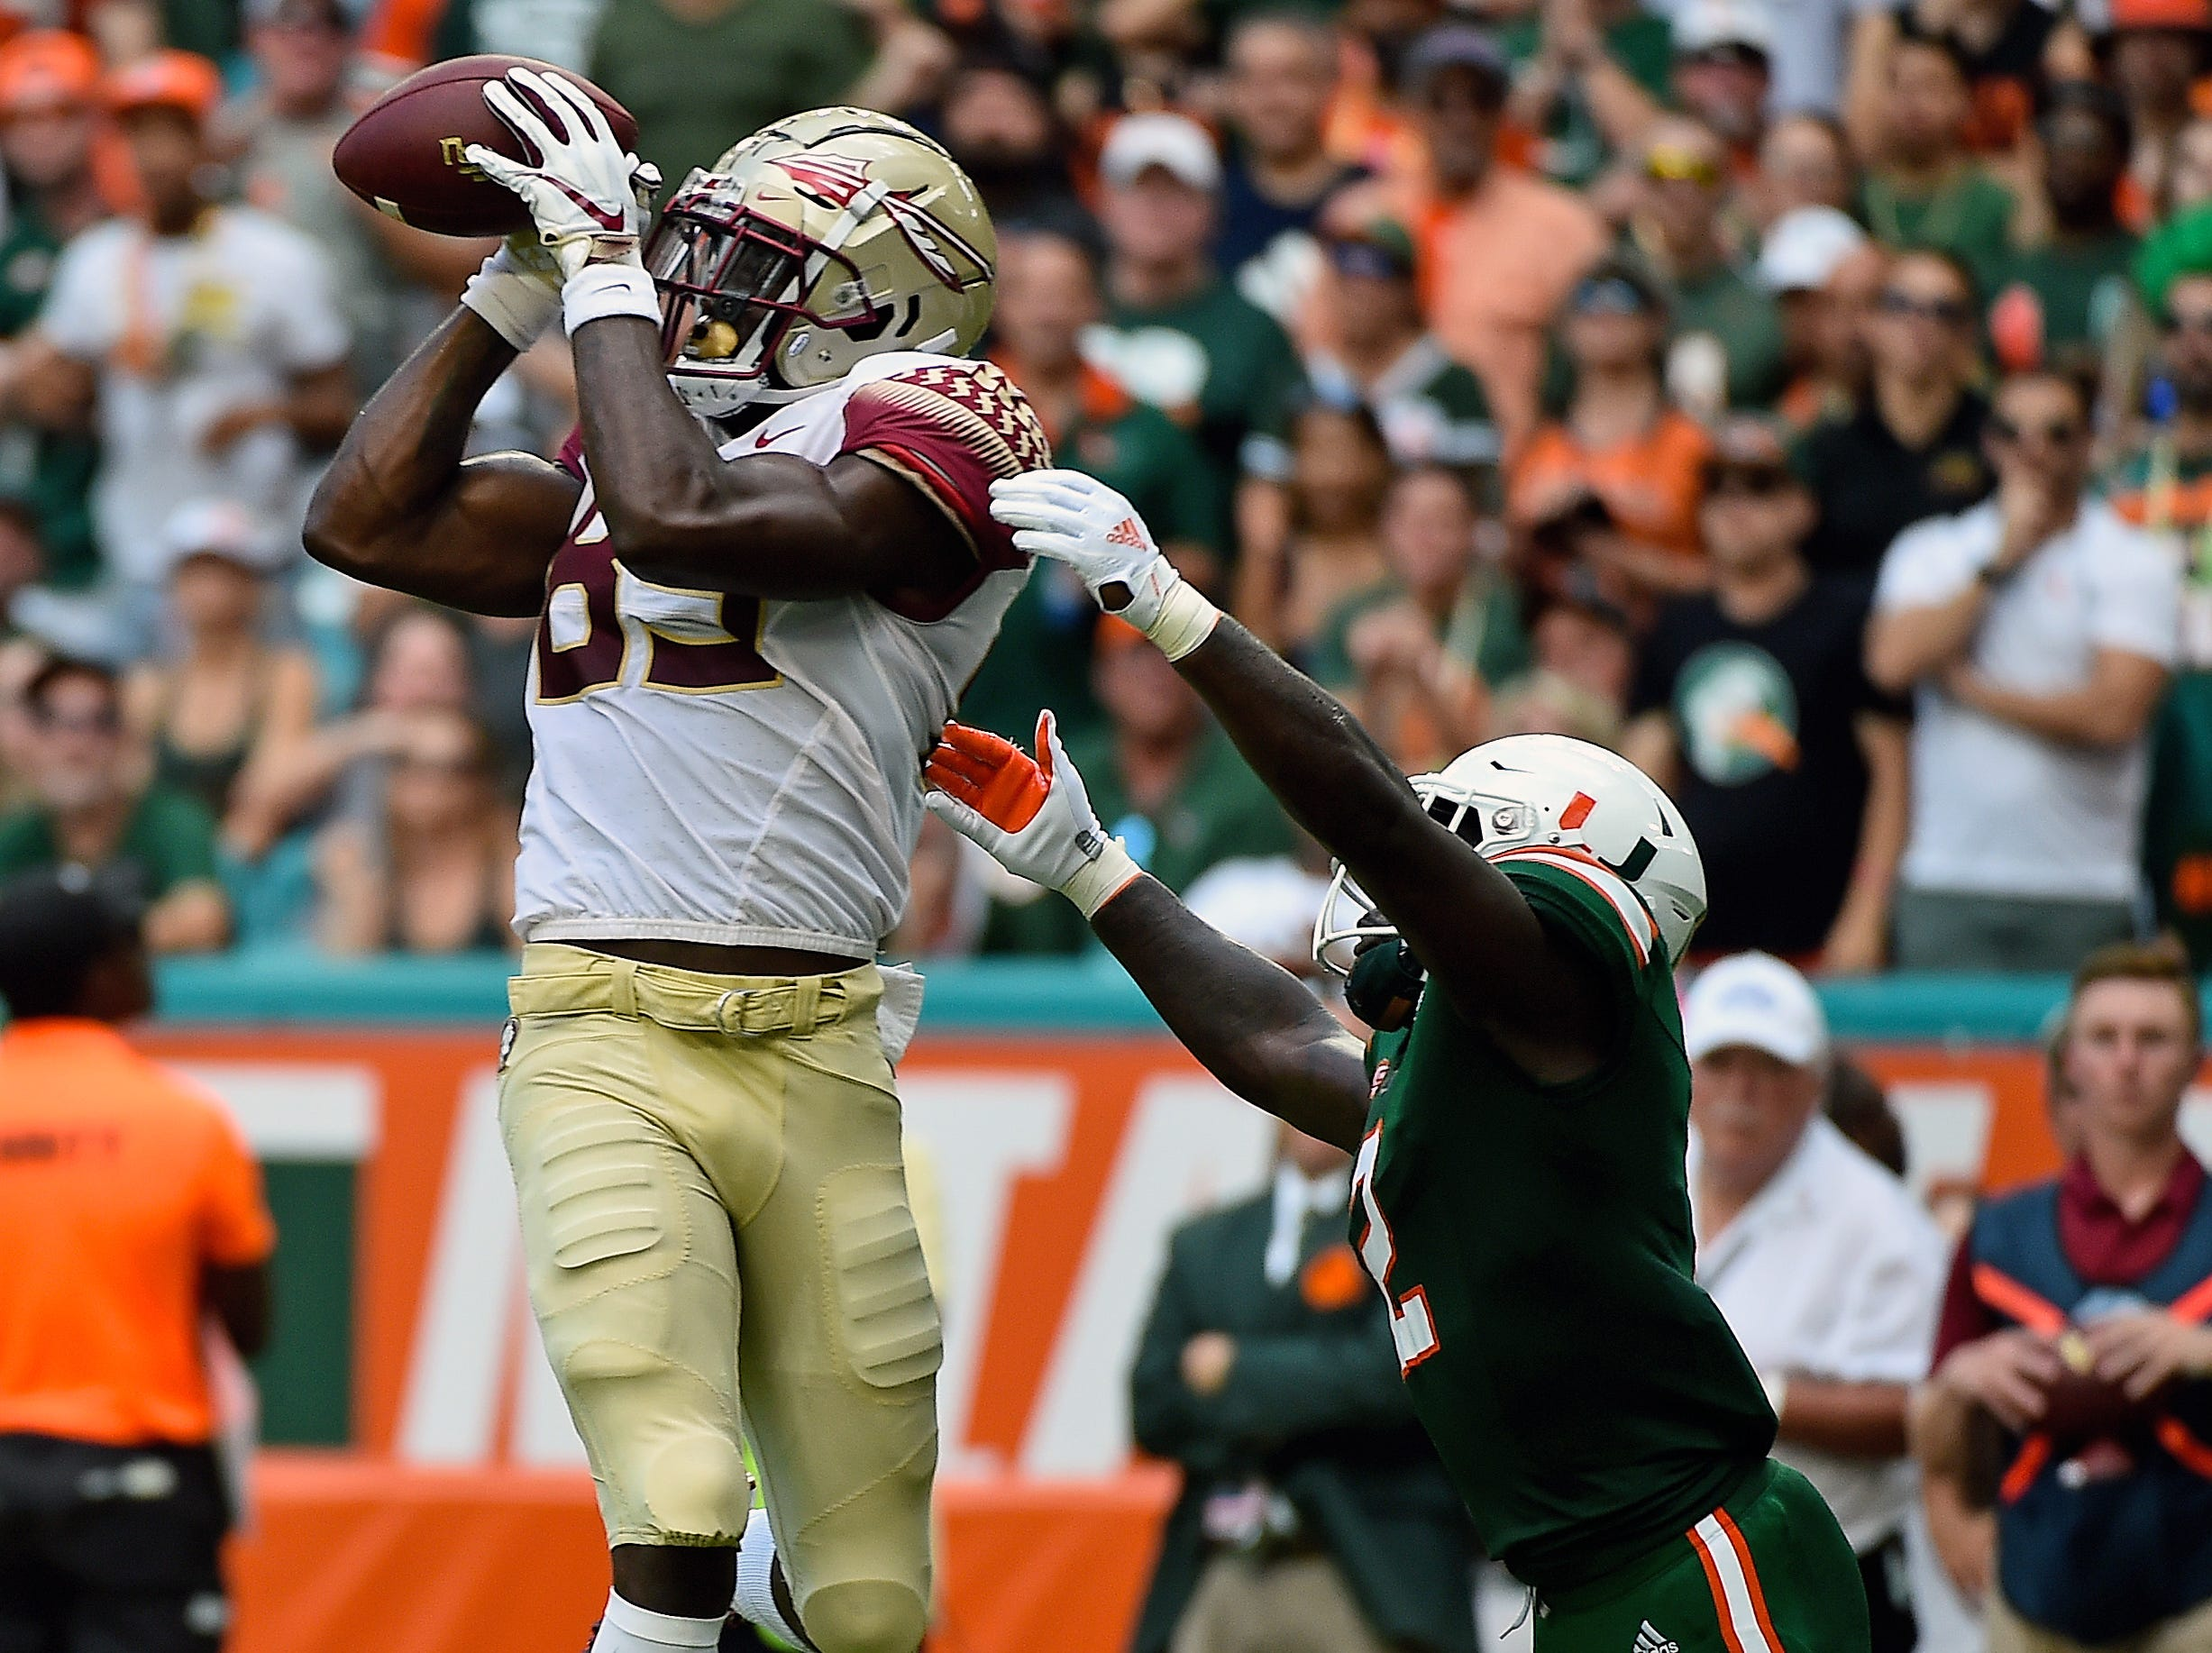 Oct 6, 2018; Miami Gardens, FL, USA; Florida State Seminoles wide receiver Keith Gavin (89) makes a catch for a touchdown against the Miami Hurricanes during the first half at Hard Rock Stadium. Mandatory Credit: Jasen Vinlove-USA TODAY Sports